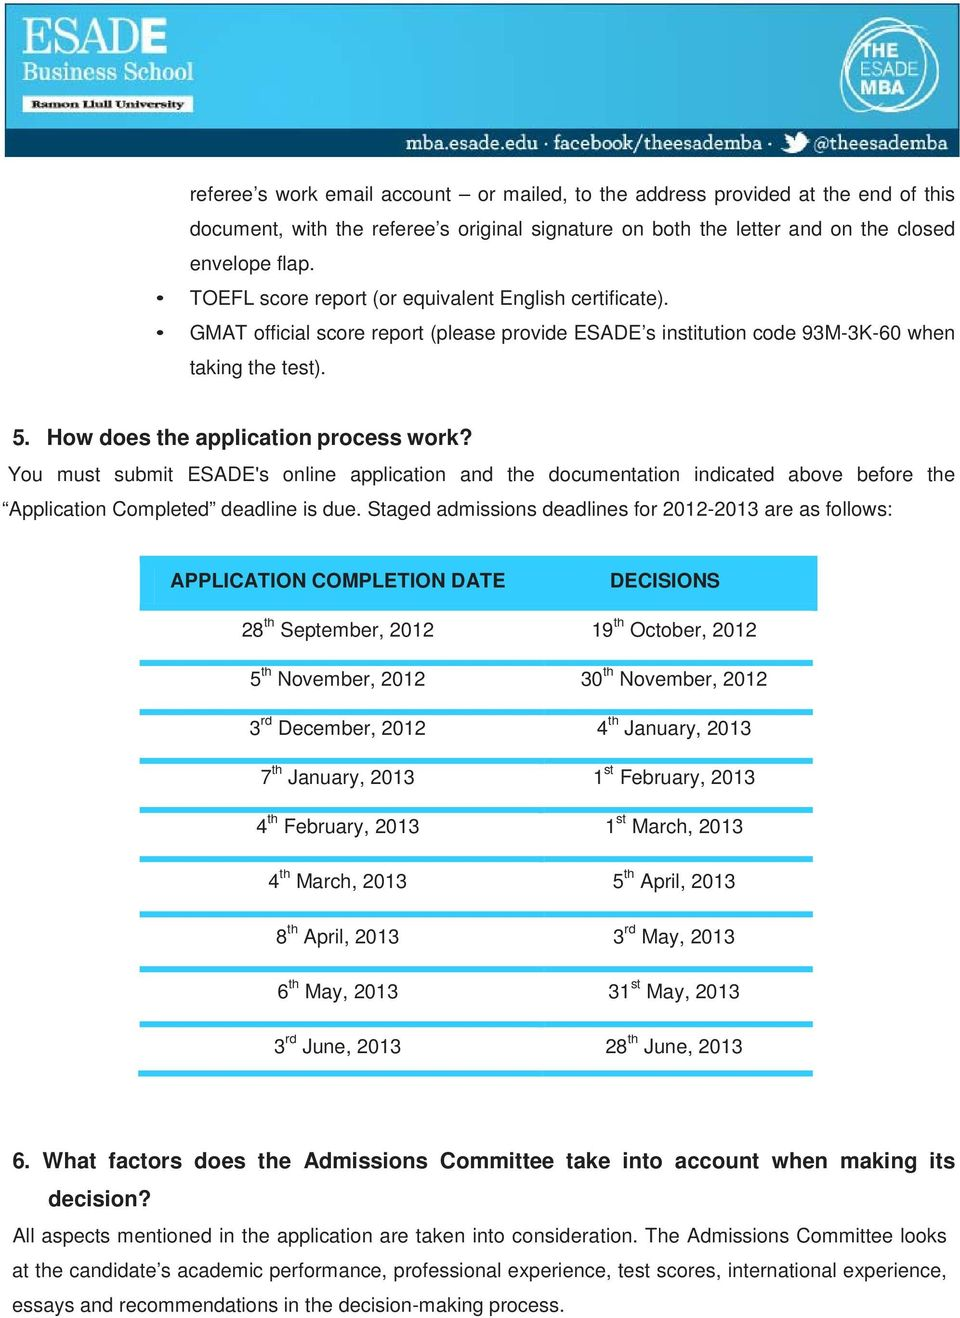 You must submit ESADE's online application and the documentation indicated above before the Application Completed deadline is due.